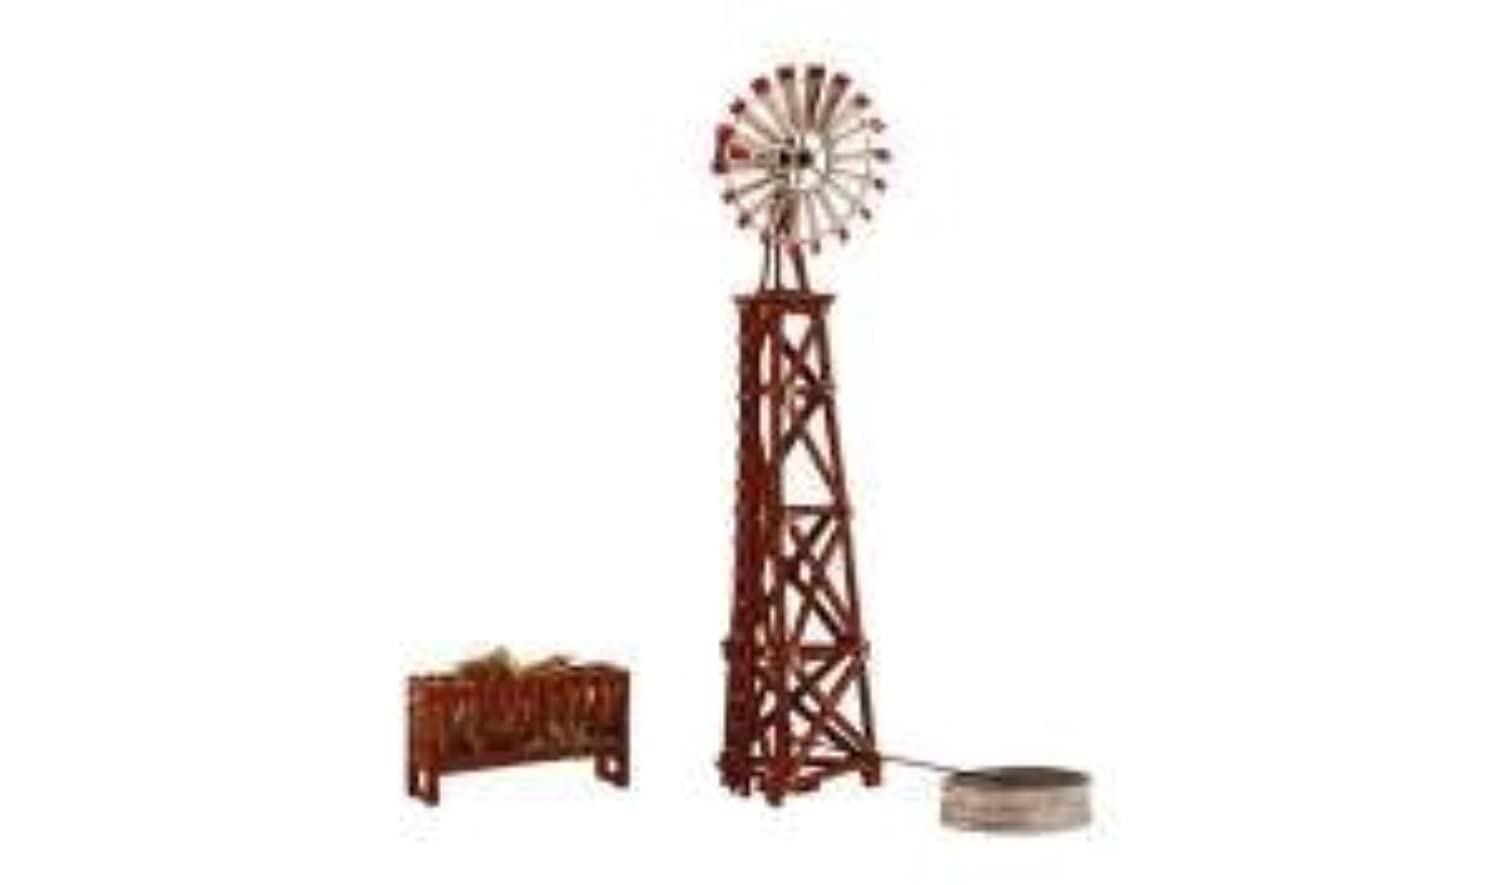 Woodland Scenics BR4937 N Built-Up Windmill by Woodland Scenics